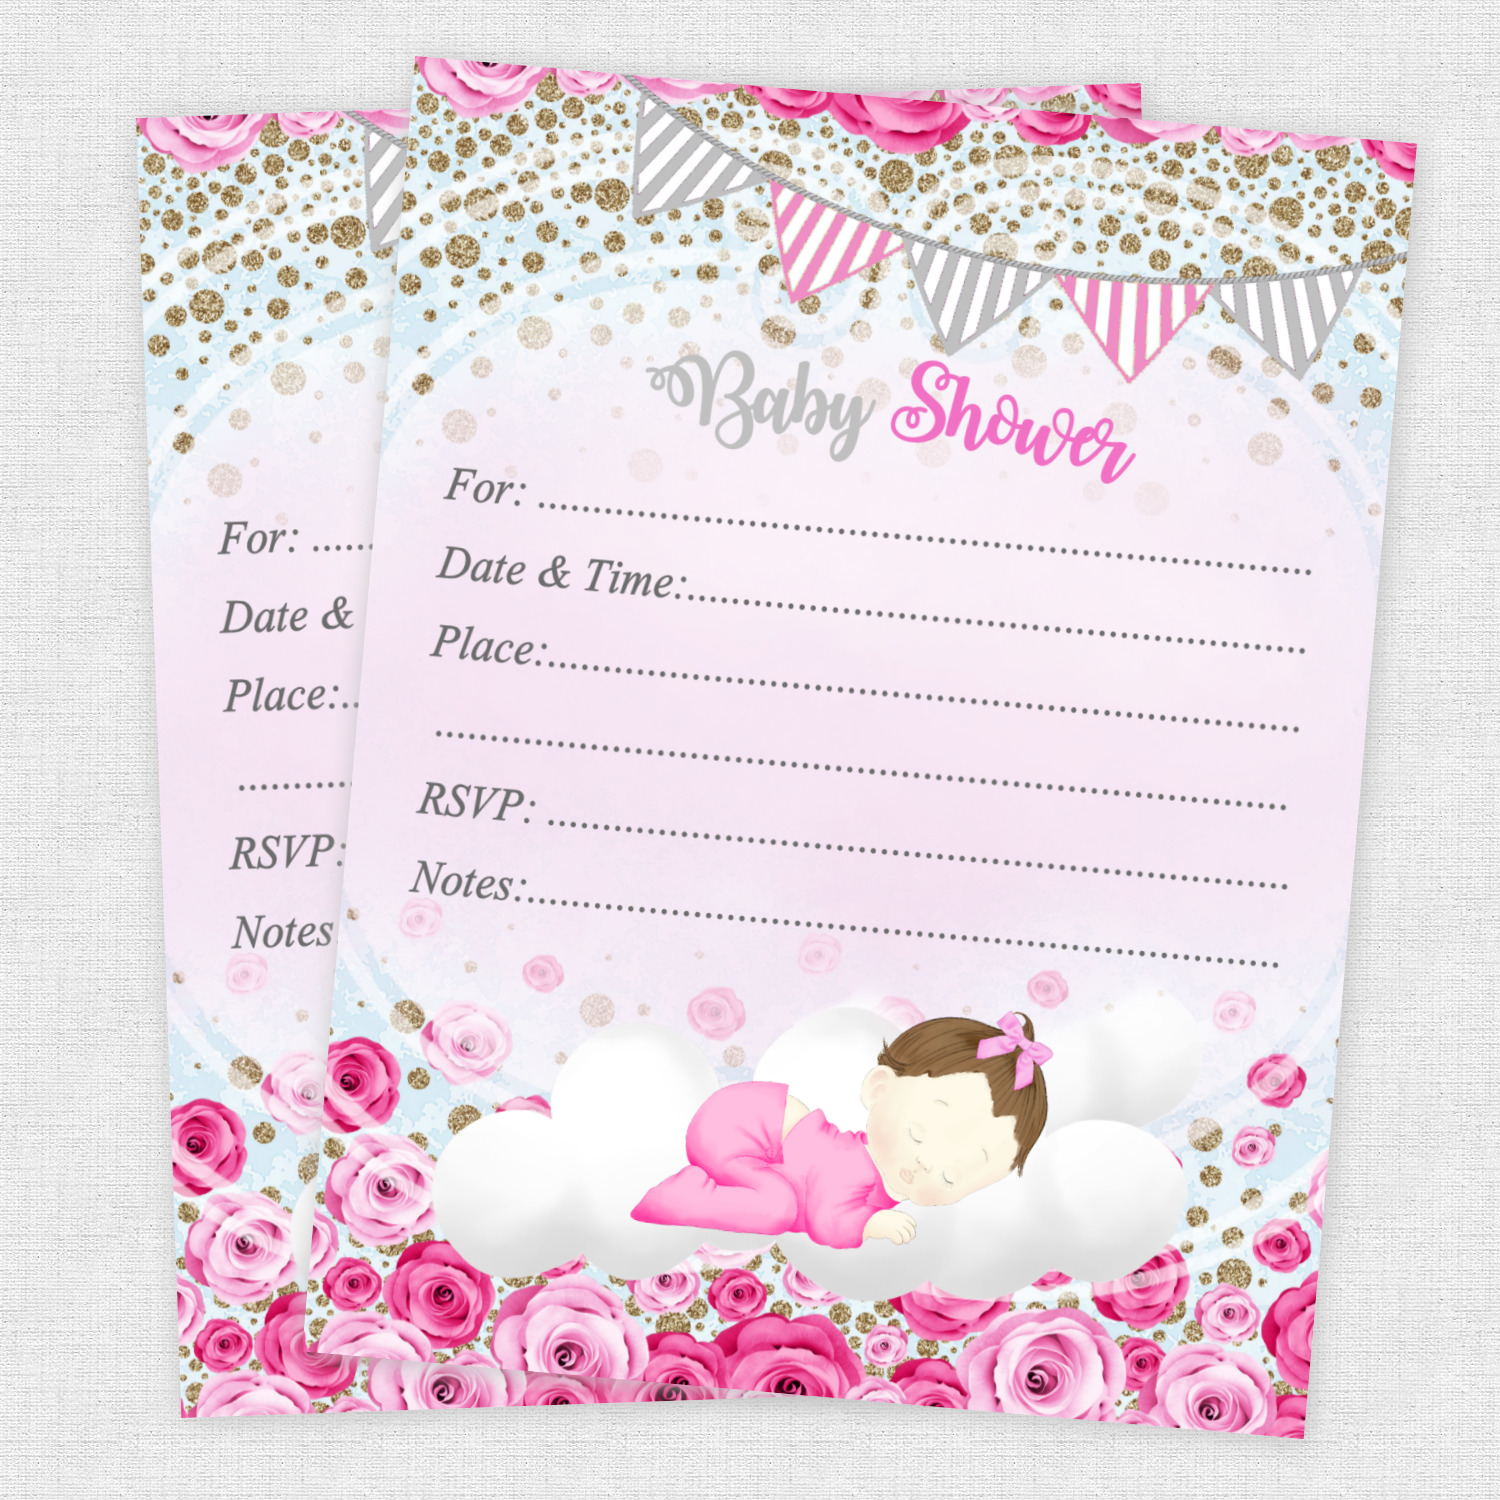 20 BABY SHOWER Invitations Girl Cards Invites Decorations ...